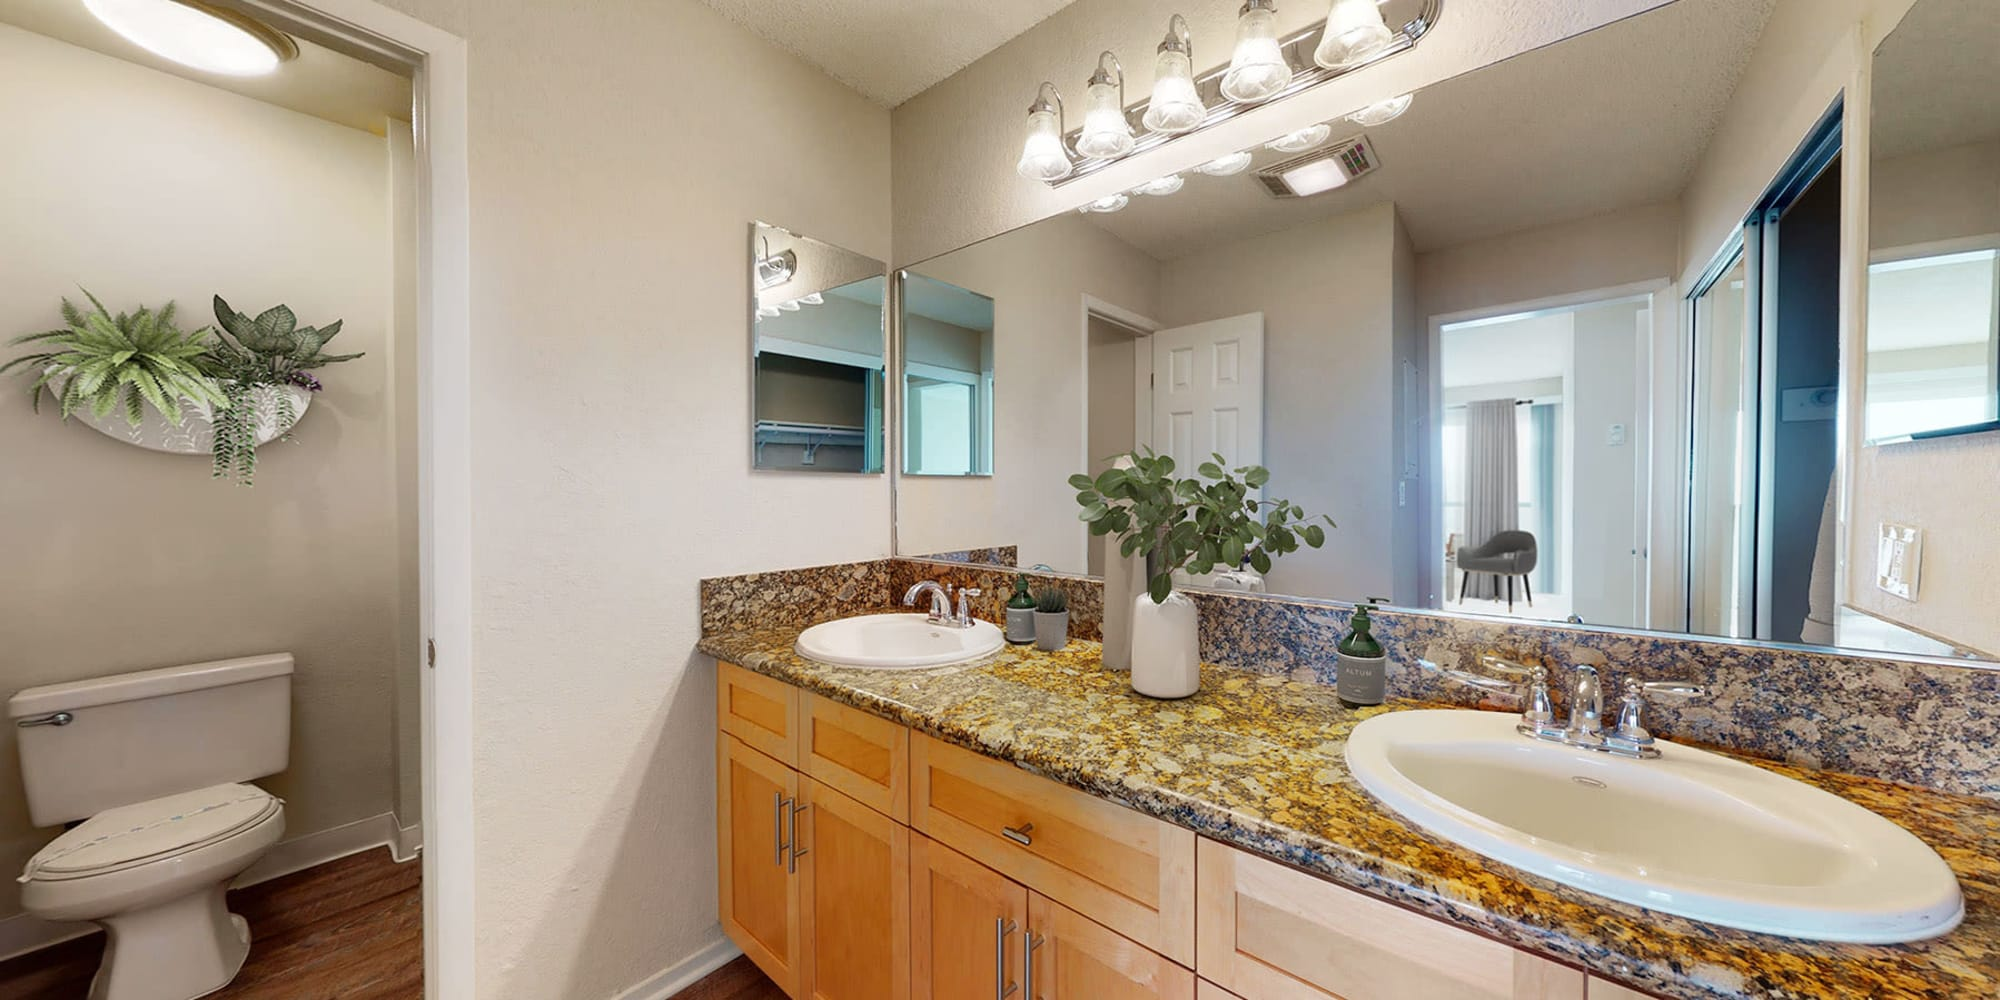 Bathroom with granite countertops and double sinks in a spacious apartment home at The Tides at Marina Harbor in Marina del Rey, California